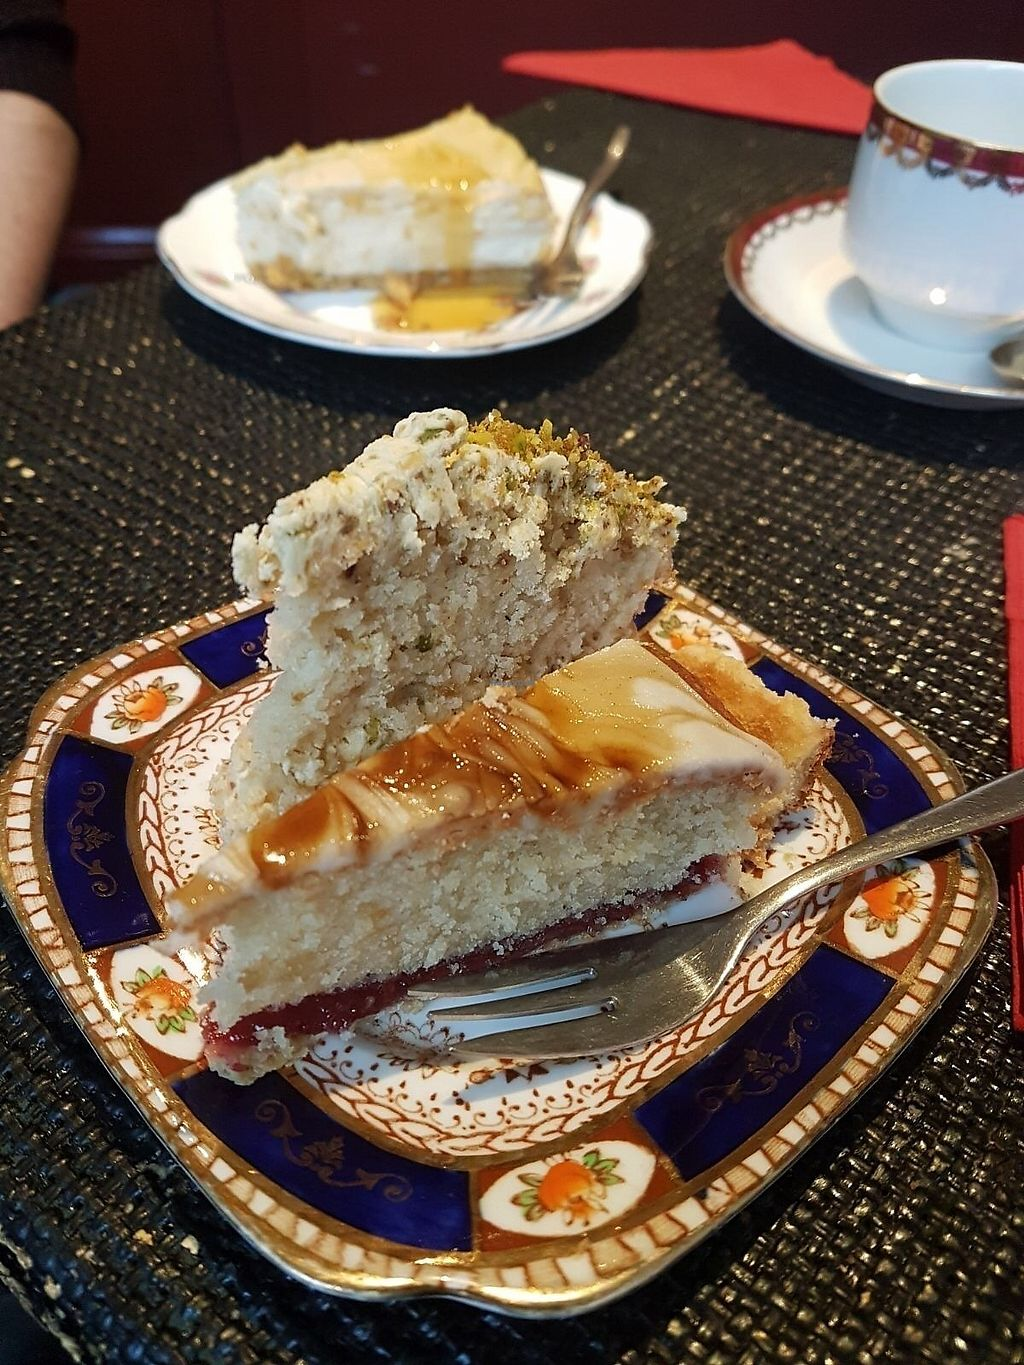 "Photo of The Kind Cake Co  by <a href=""/members/profile/katysarah"">katysarah</a> <br/>Pistachio praline & bakewell  <br/> October 21, 2017  - <a href='/contact/abuse/image/65059/317437'>Report</a>"